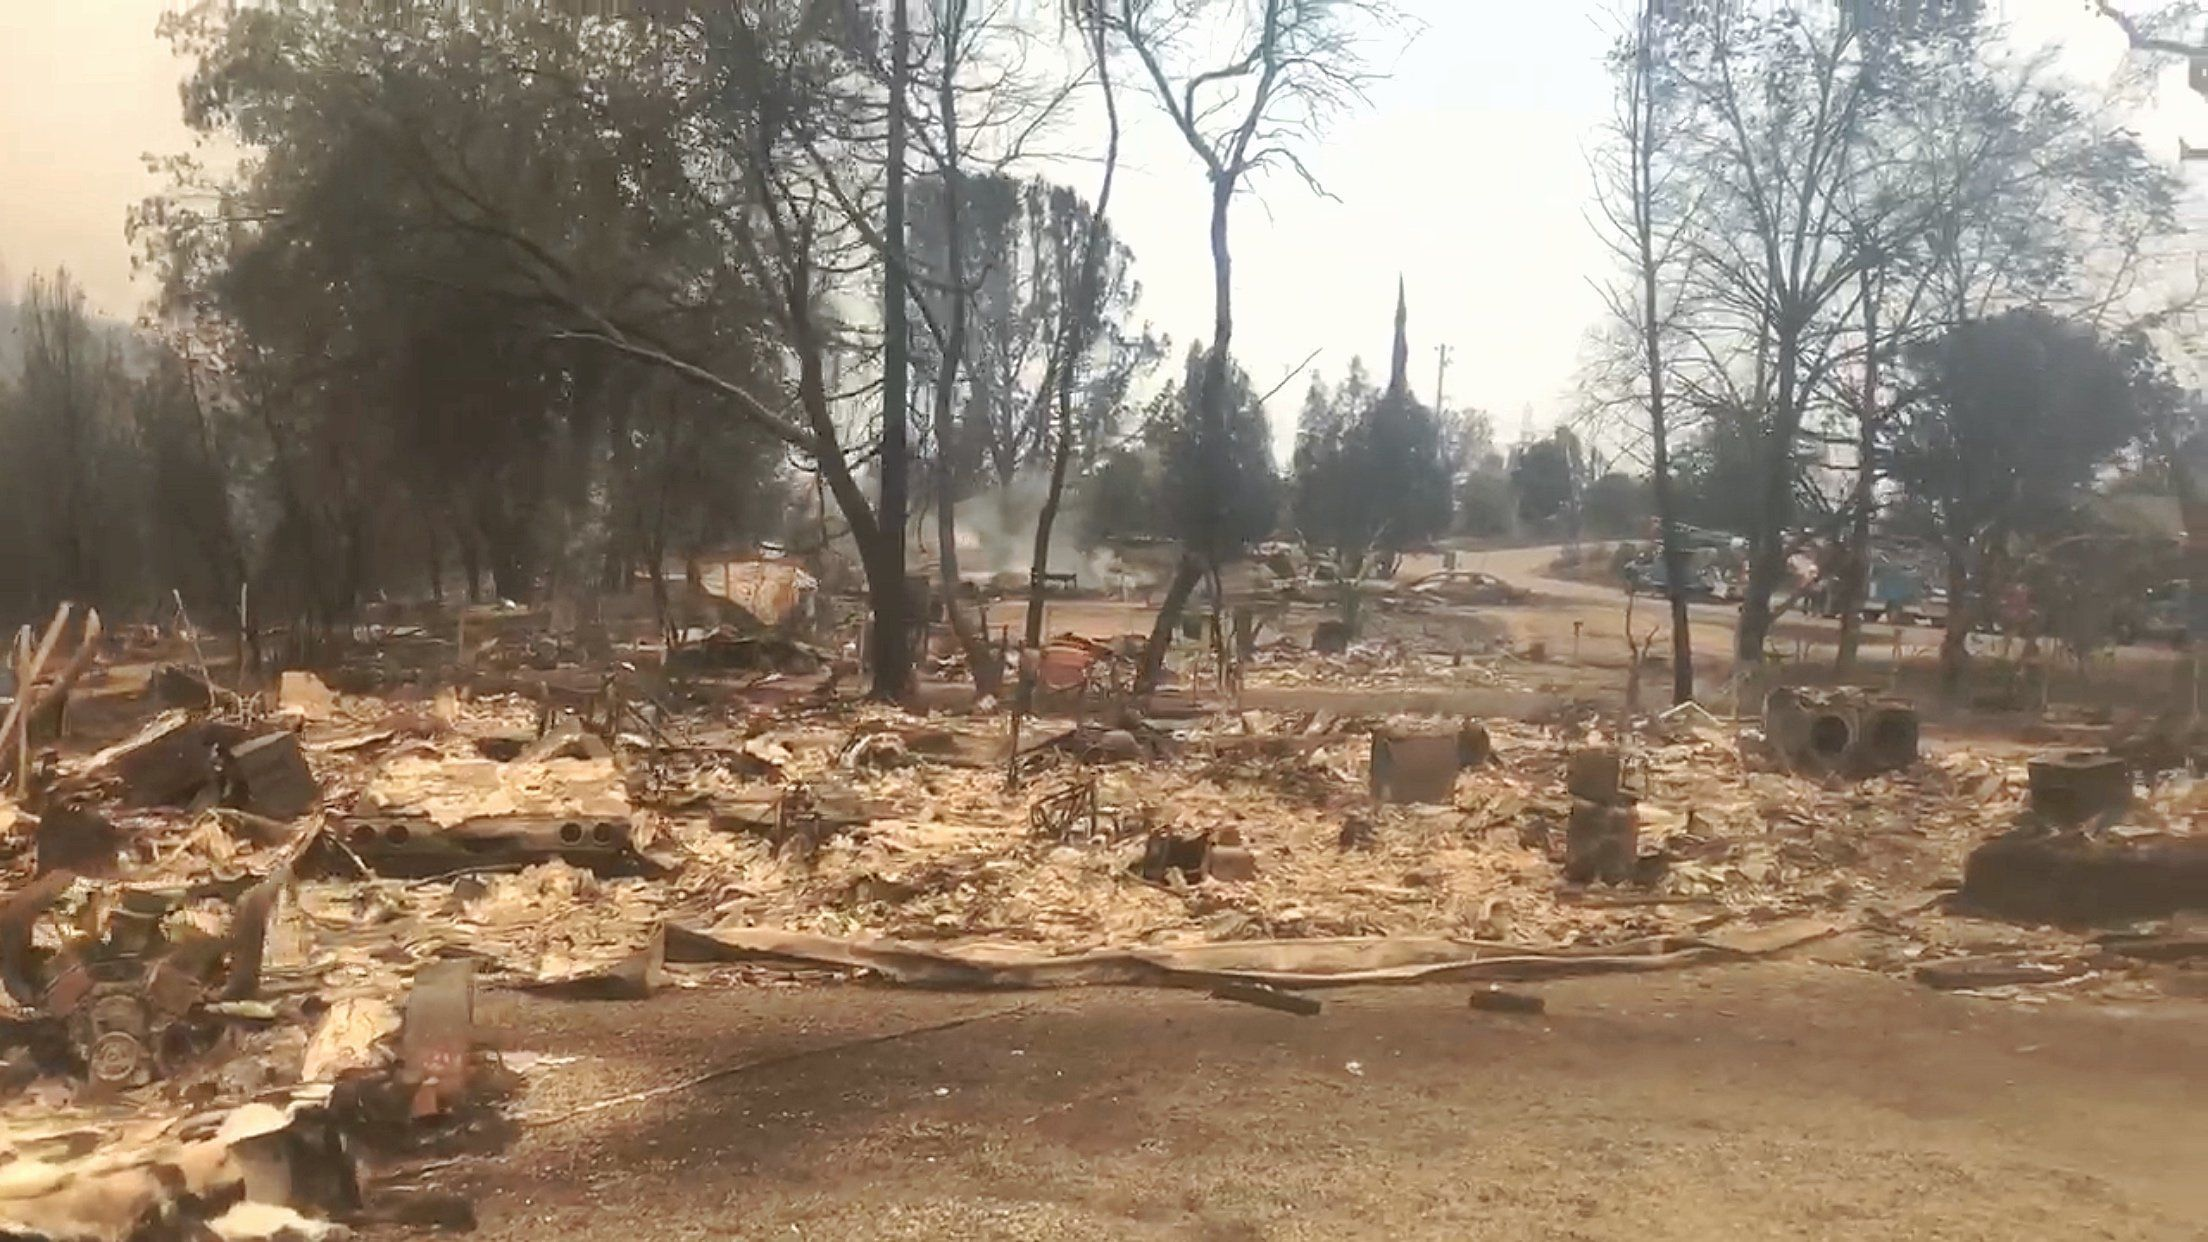 TheCampbells' property after the Carr fire hit, near Redding, California, on July 27, 2018.